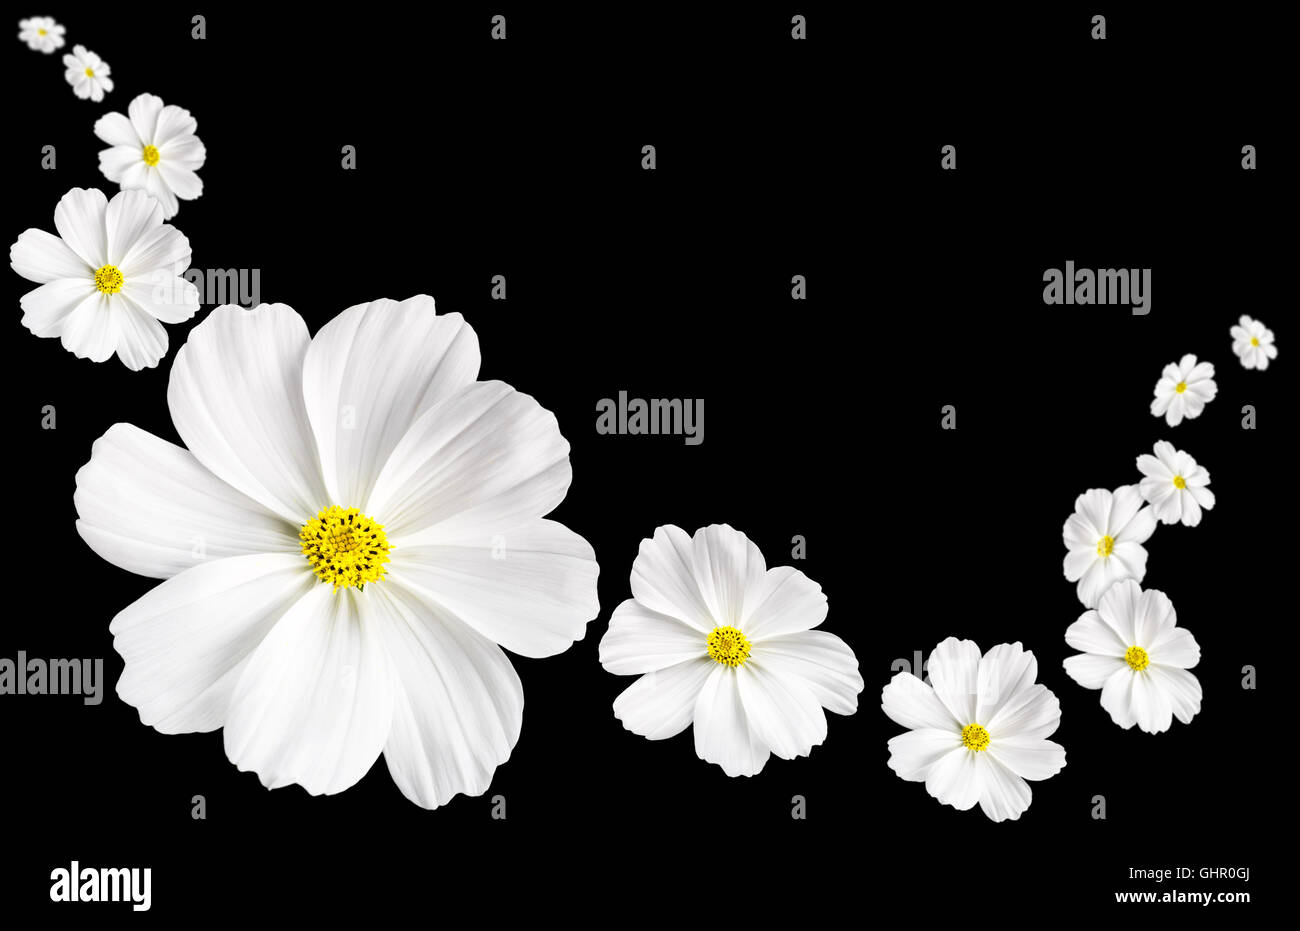 White Cosmos Flowers Floating Against A Black Background Stock Photo